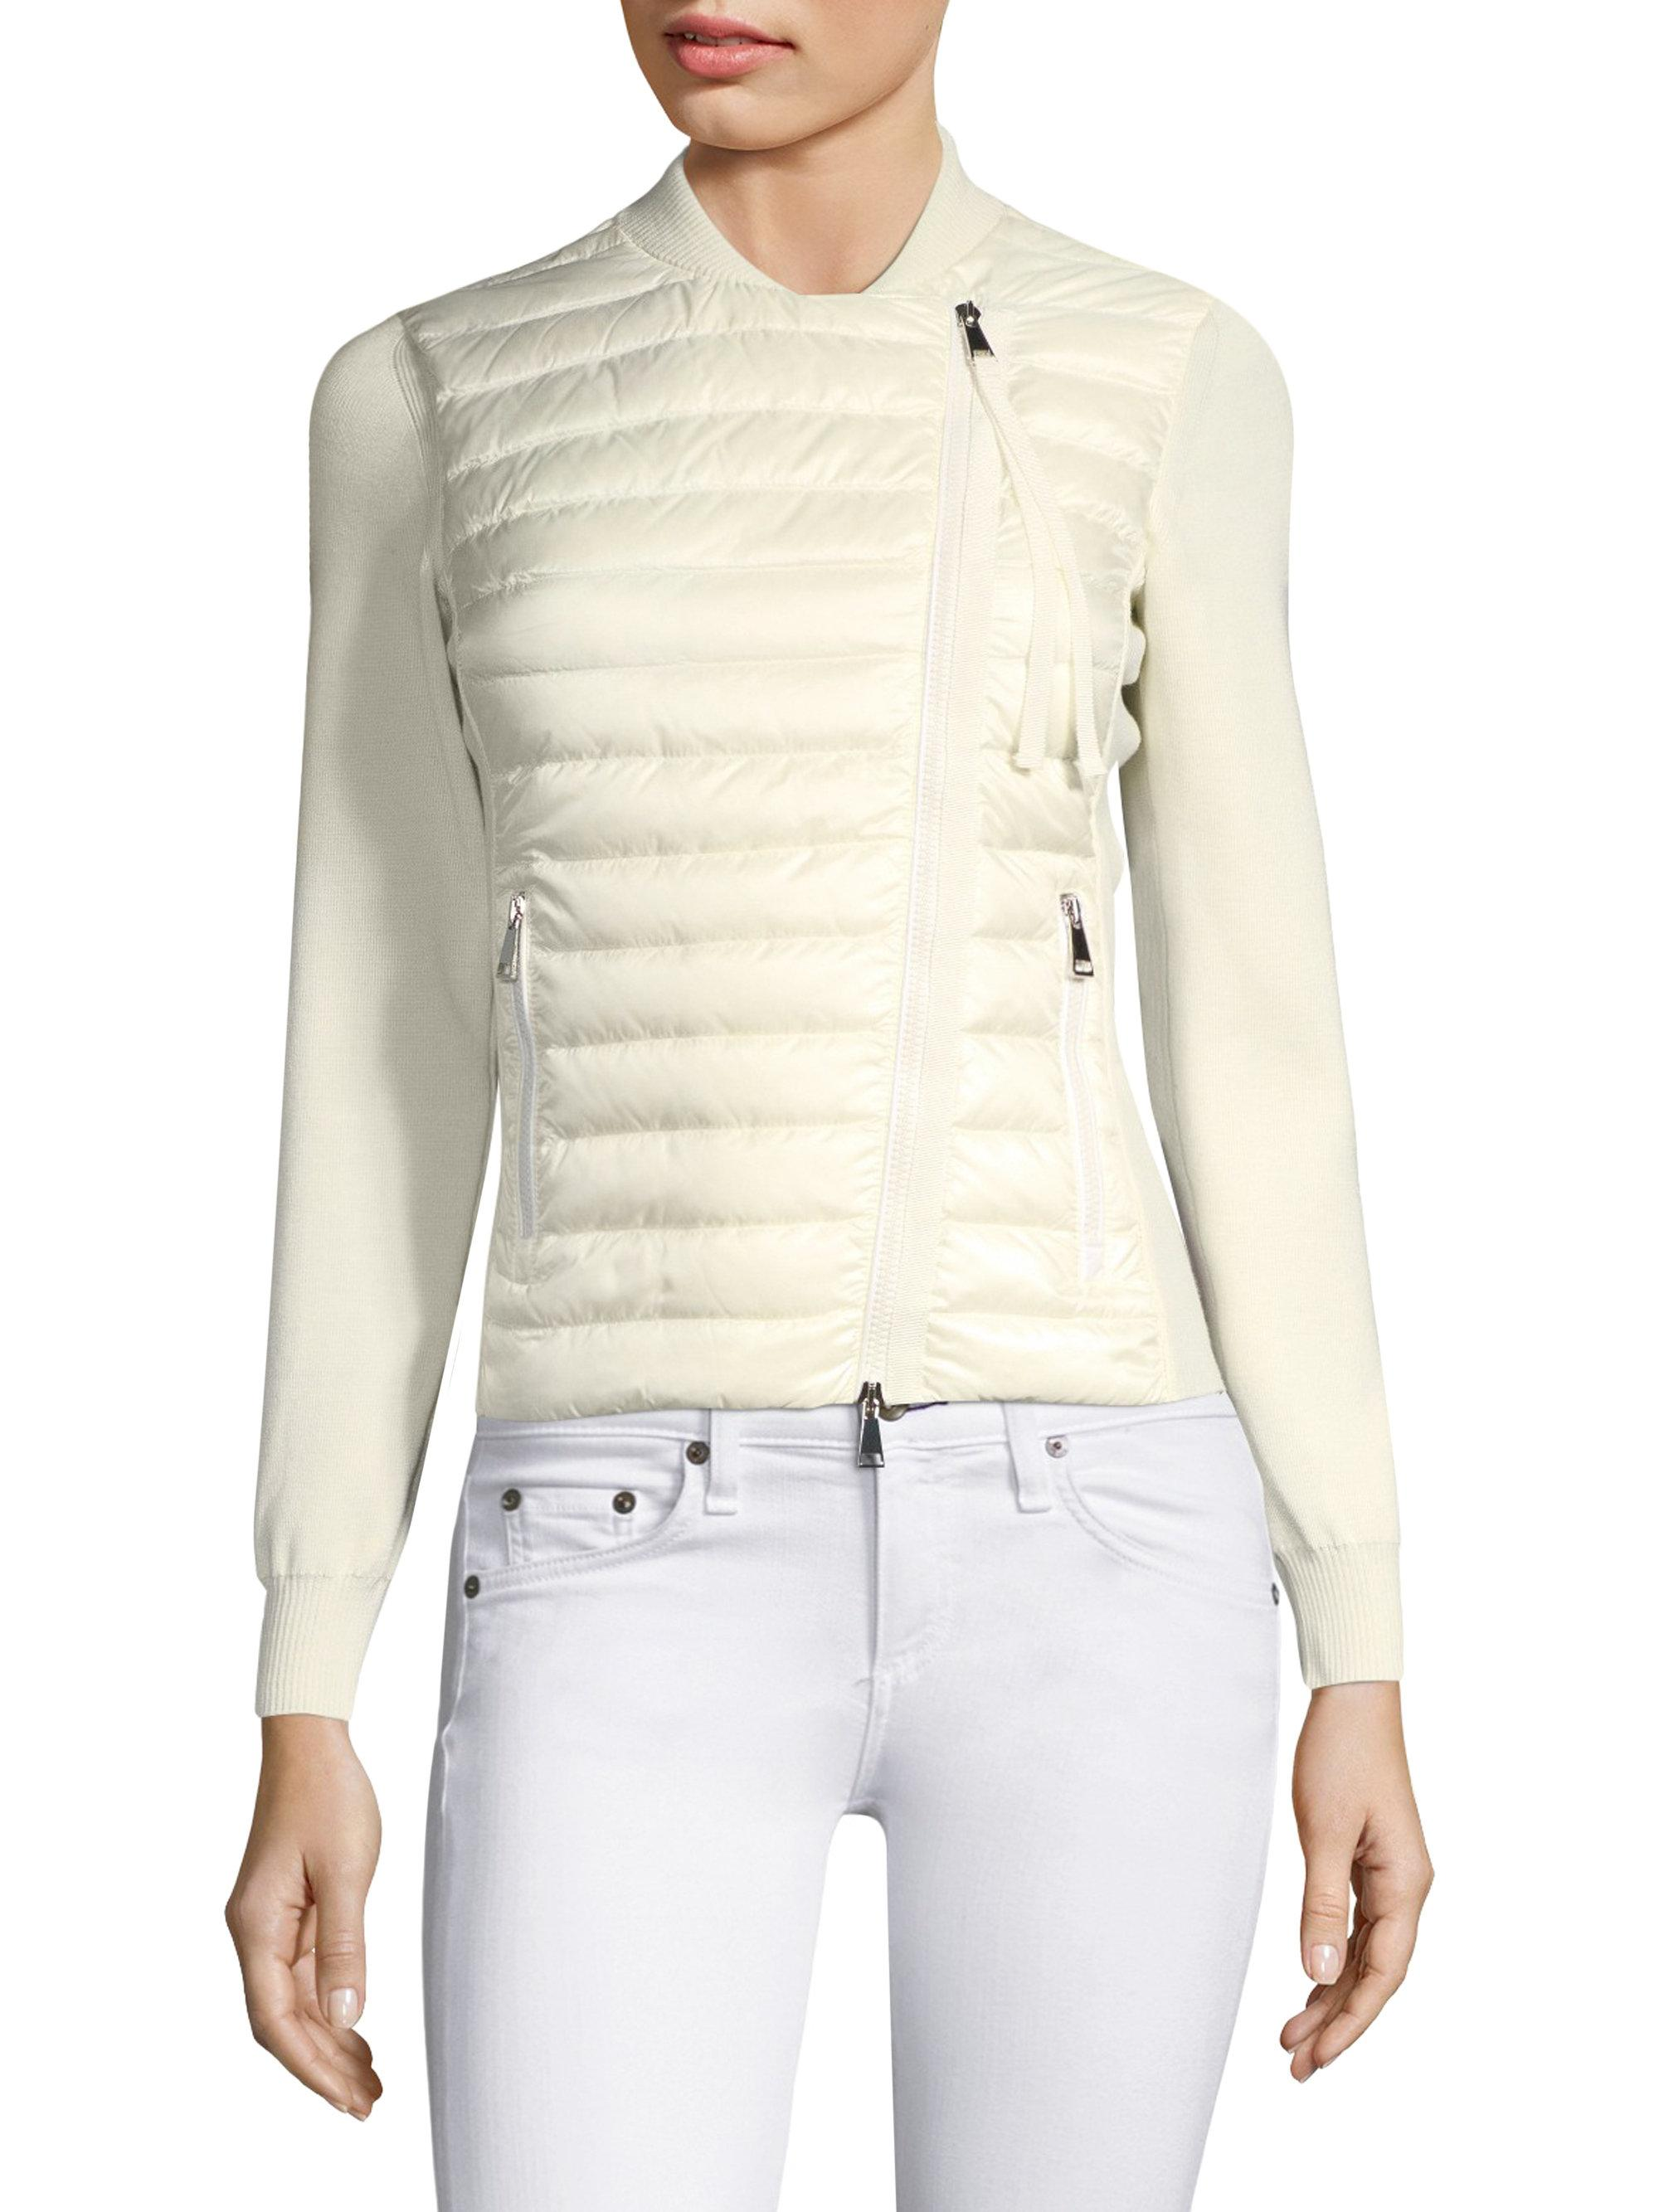 Moncler. Women's White Puffer Knit Jacket